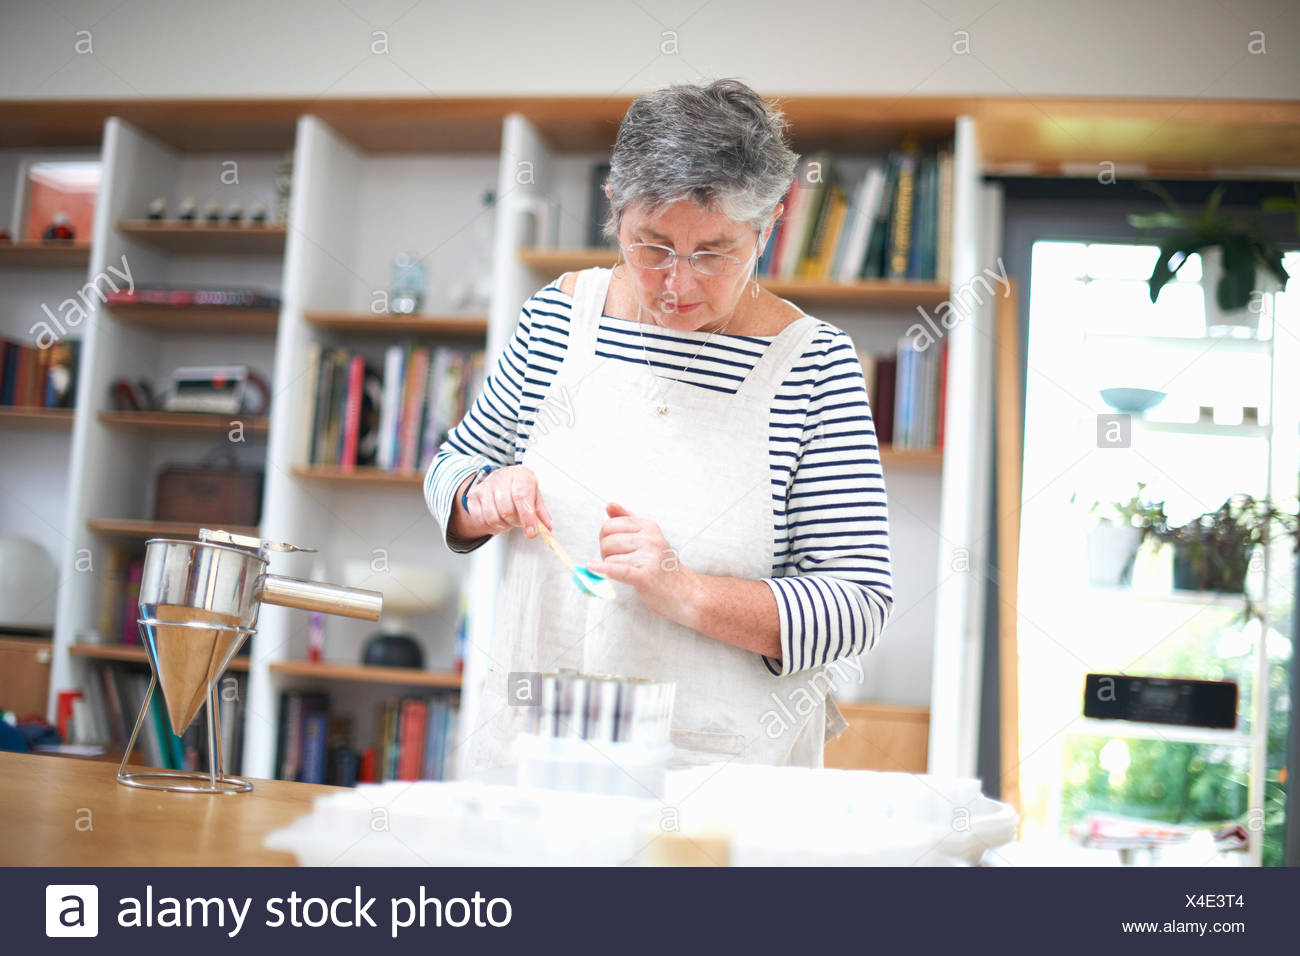 Senior woman tapping powder into containers - Stock Image